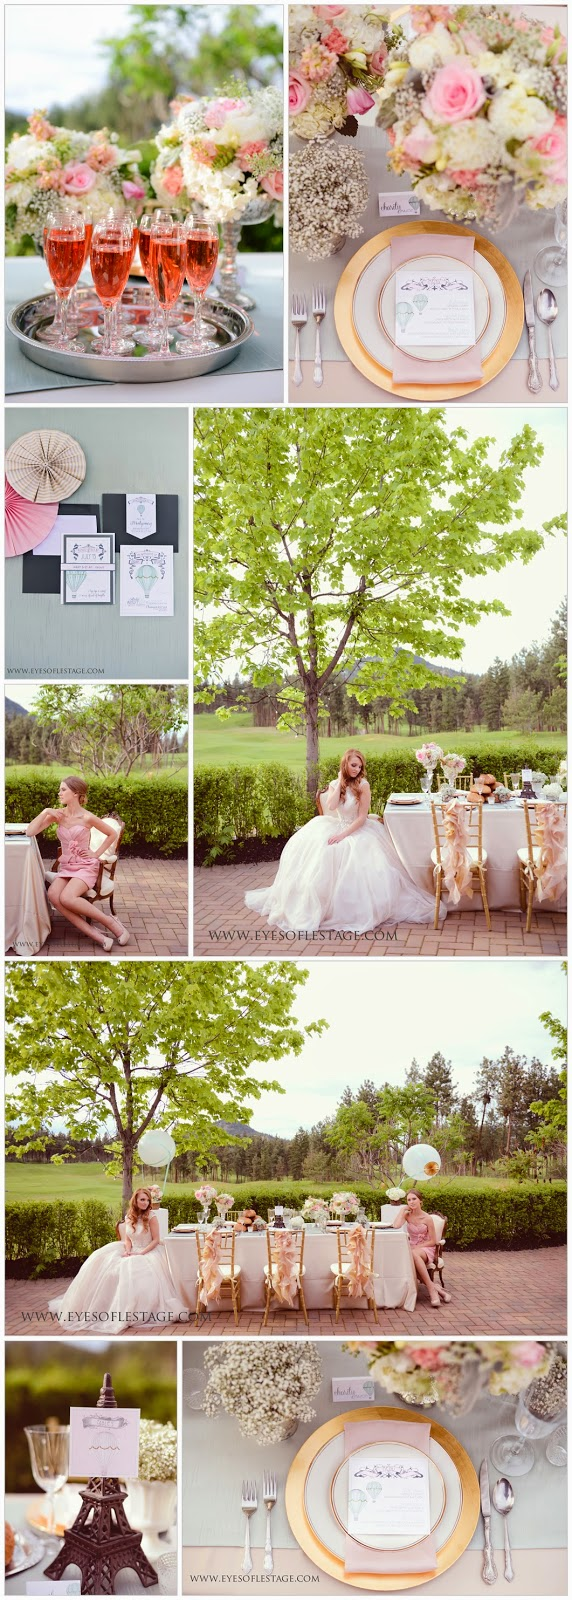 Enzoni, Allure, Parisian wedding, Eiffel Tower, Okanagan Golf Club, Dandelion Willows